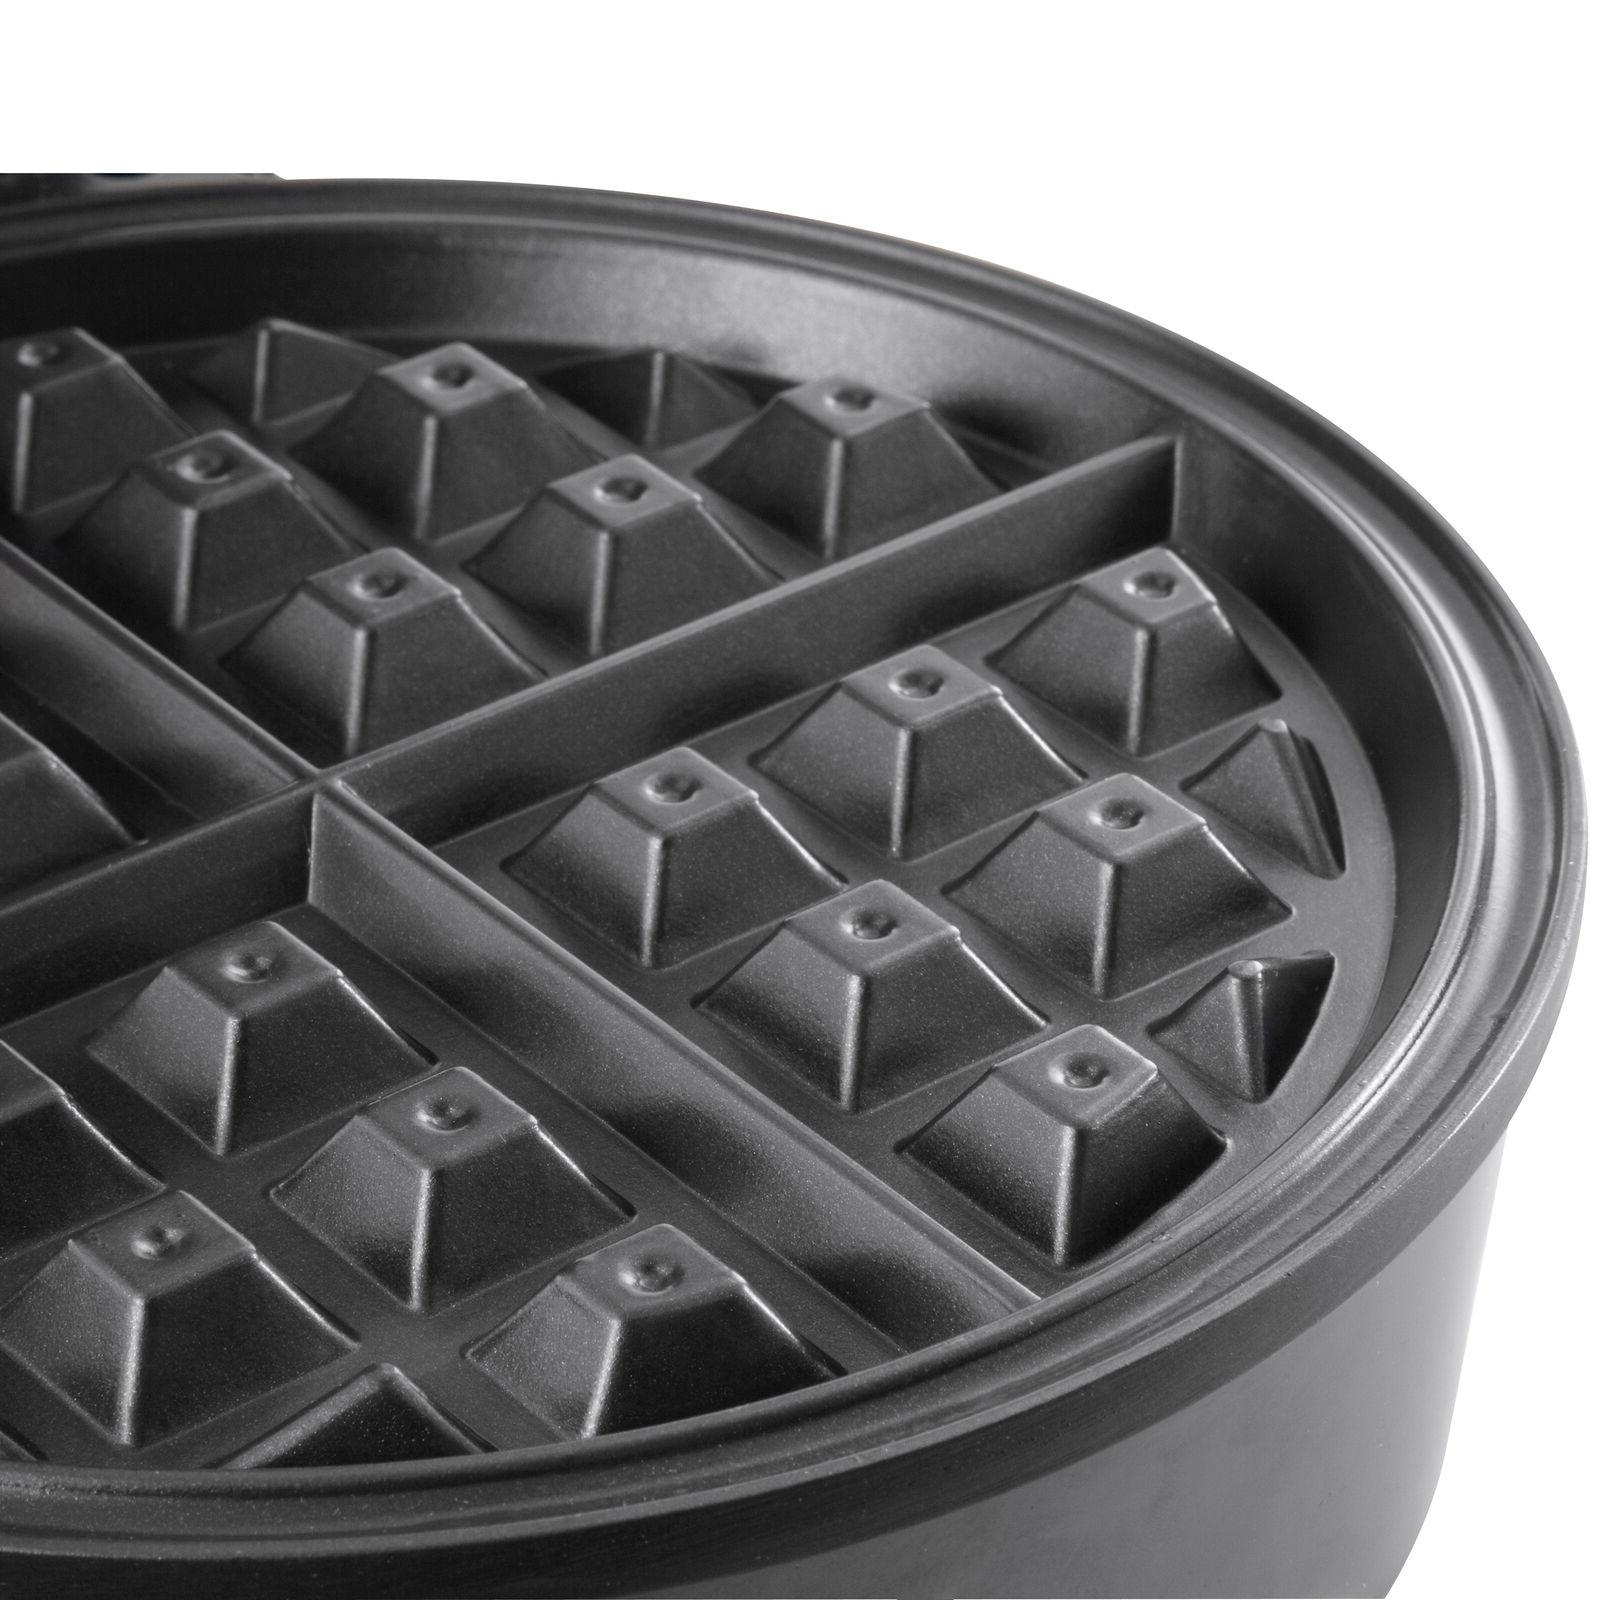 Oster Nonstick Waffle with Control, Silver